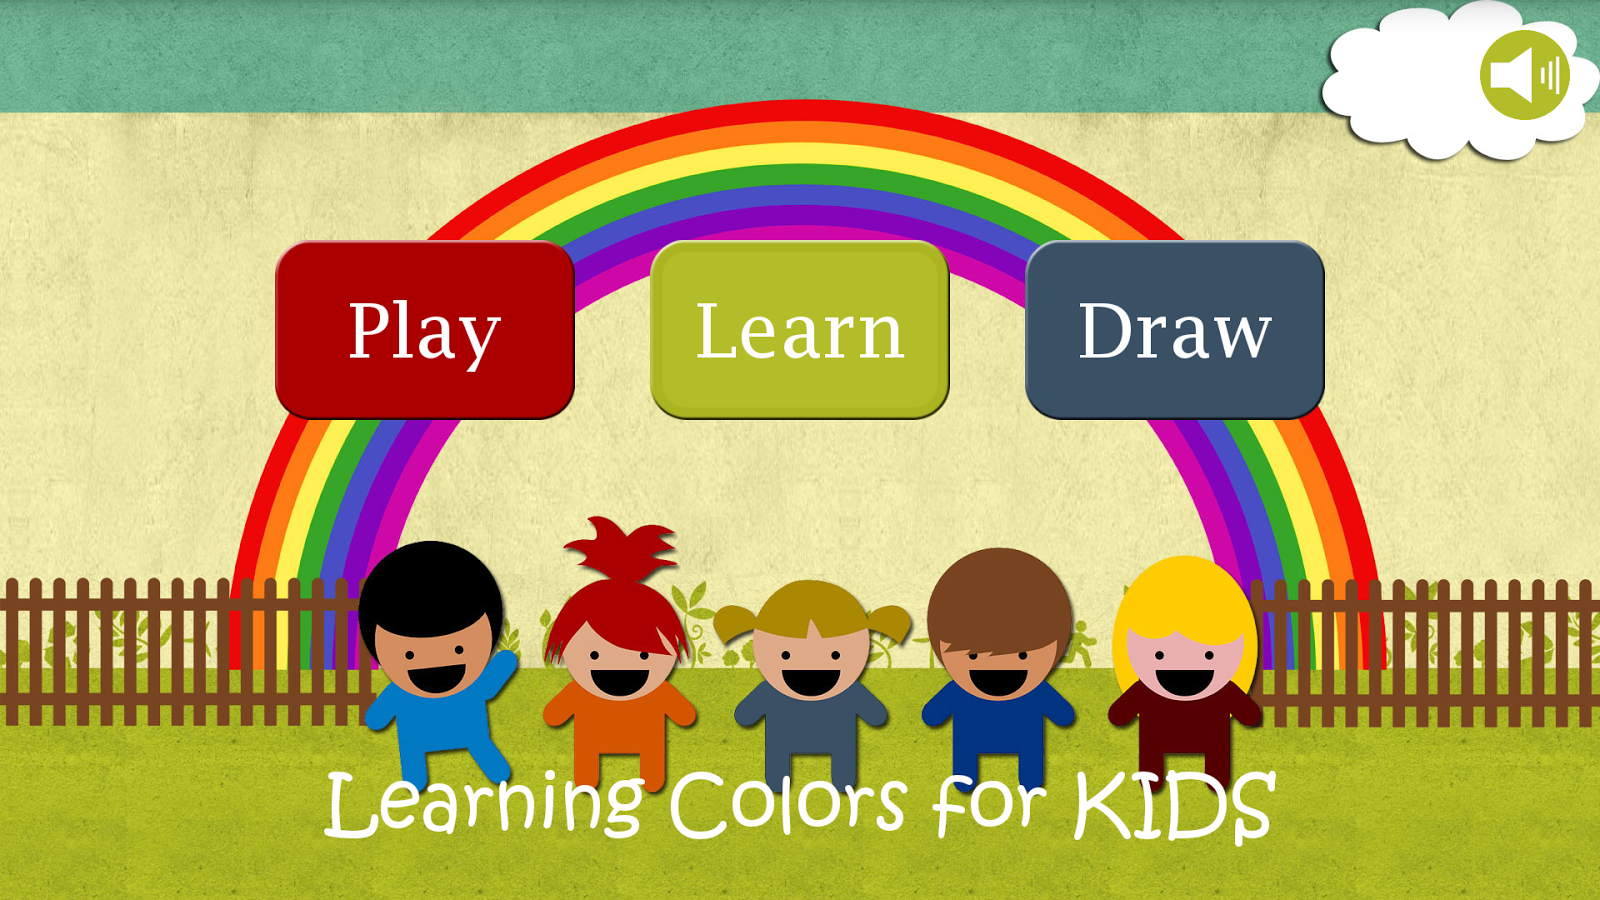 Colouring games play online free - Game Color For Kid Learning Colors For Kids Screenshot